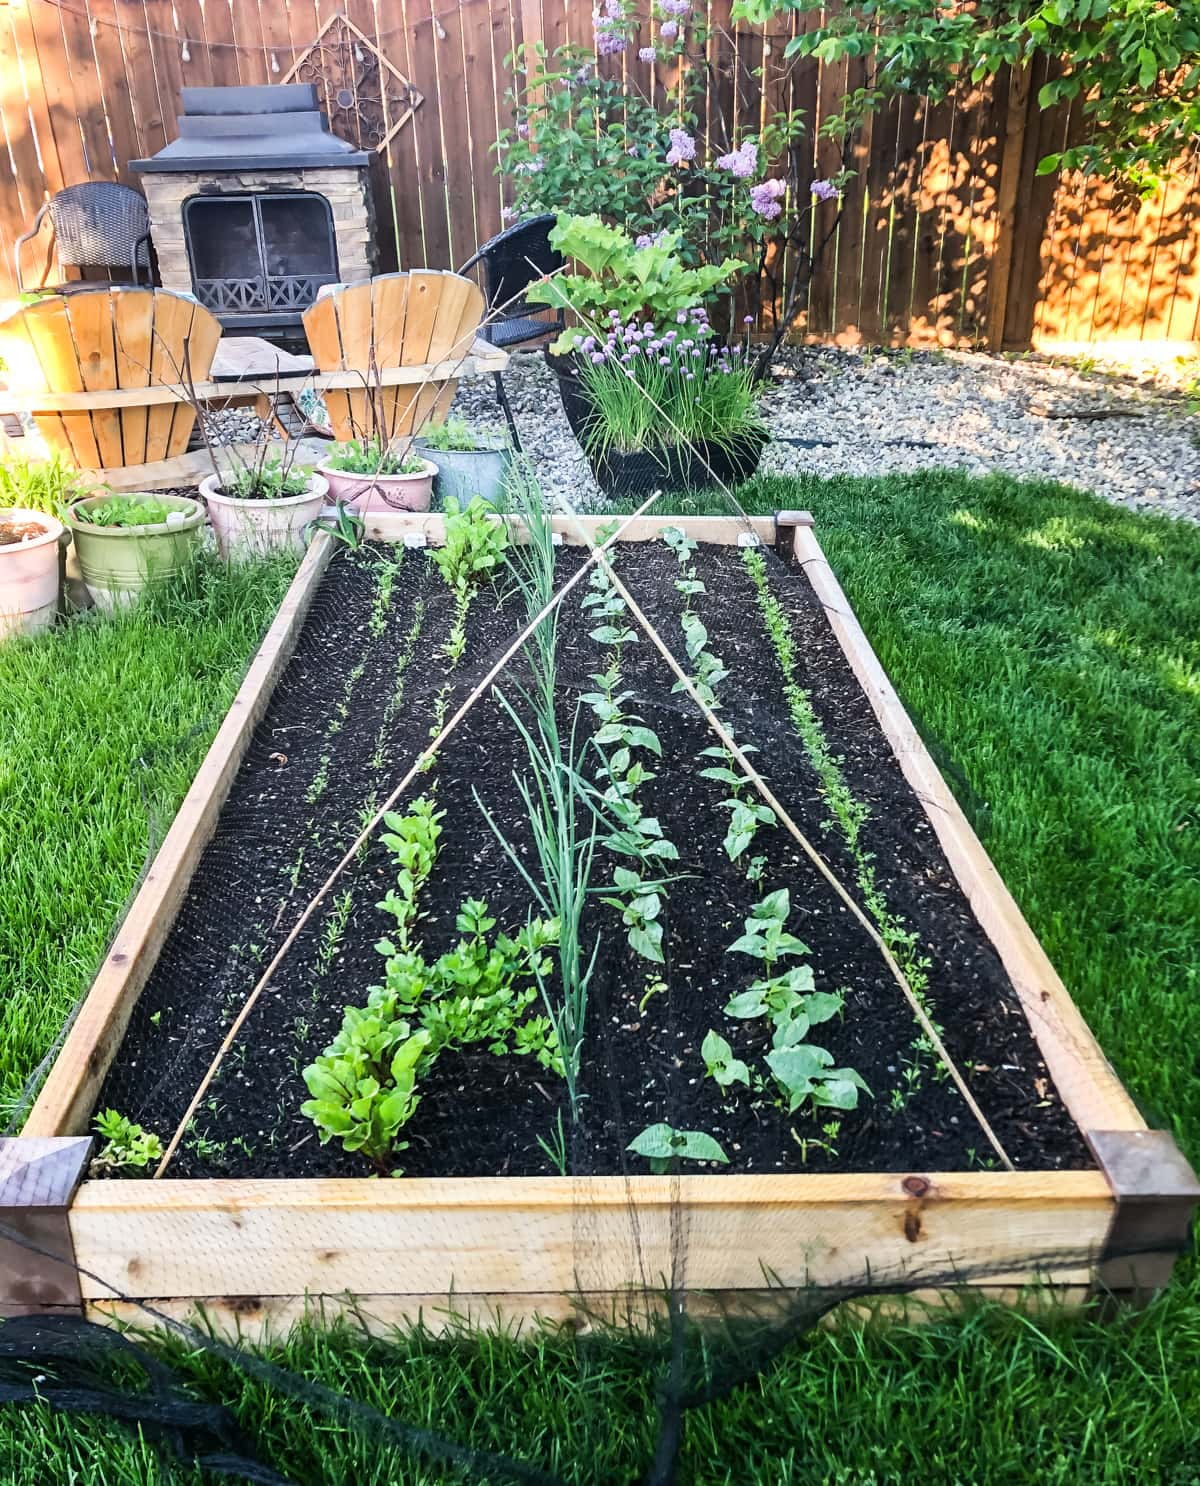 a small urban vegetable garden filled with young seedlings. in the background are more pots of vegetables, trees, an outdoor fireplace and chairs